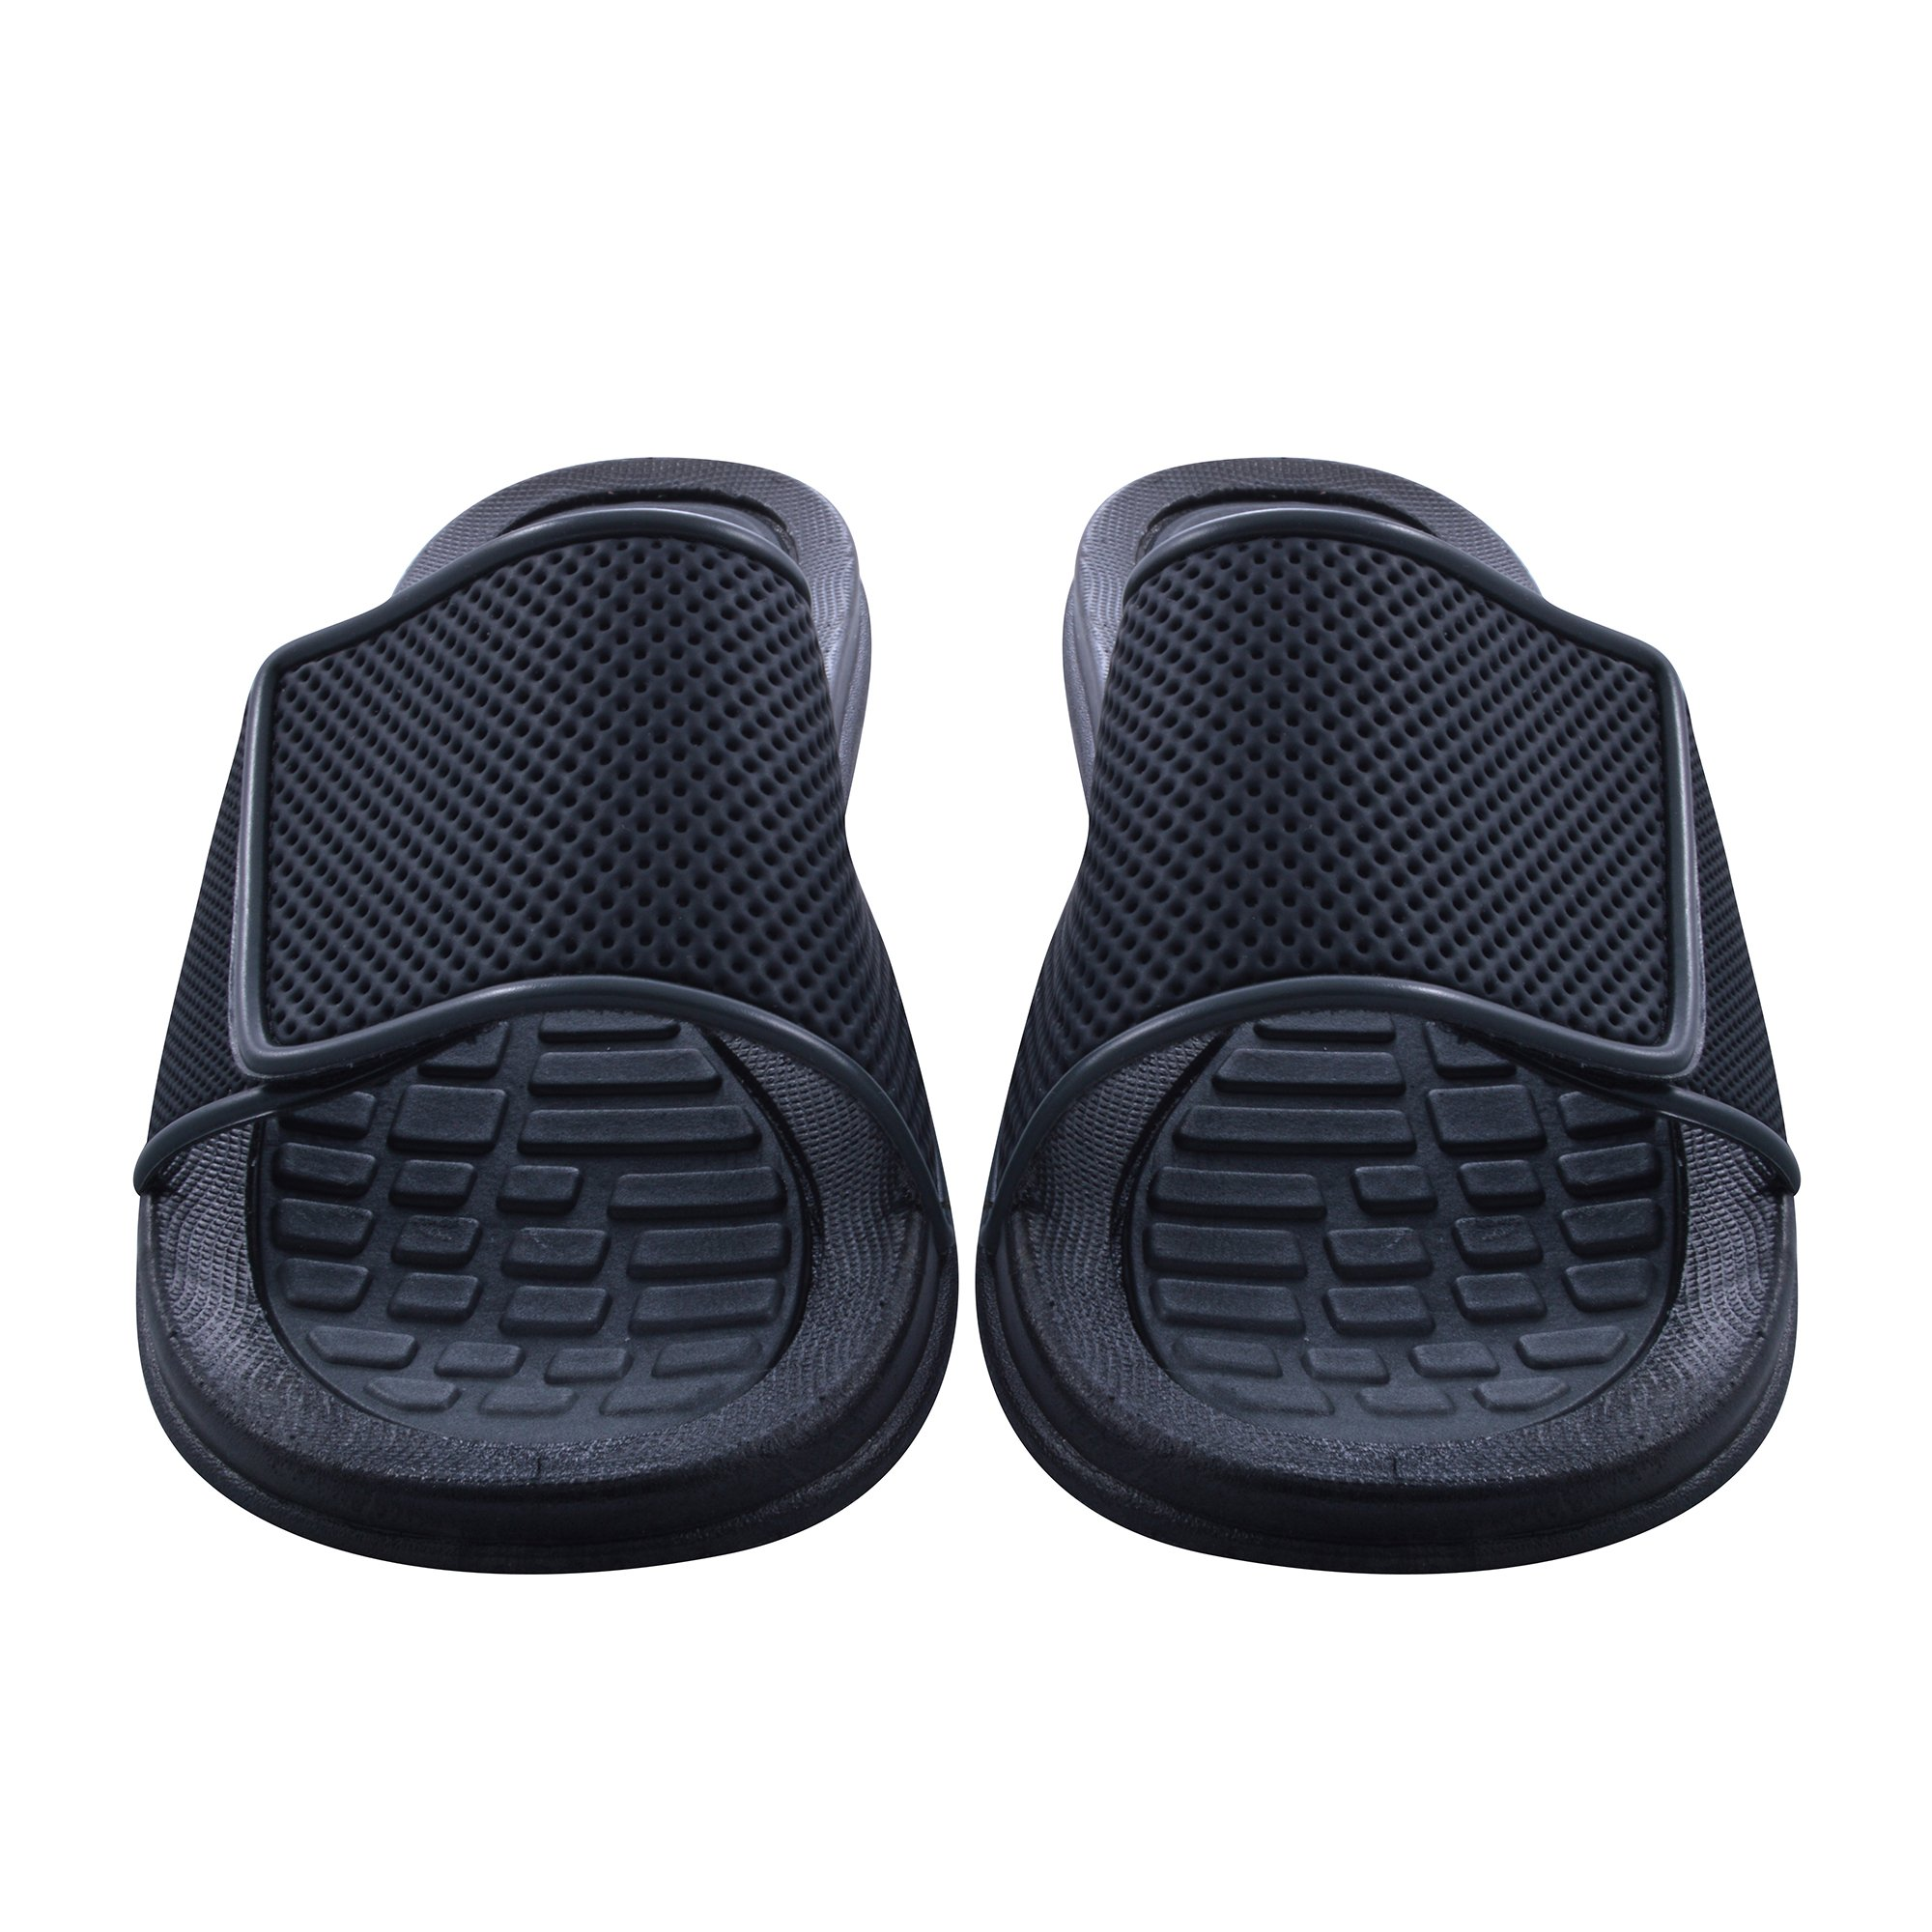 Sky Sole Mens Slide Sandals with Velcro Strap in Gray Trim, Size 9